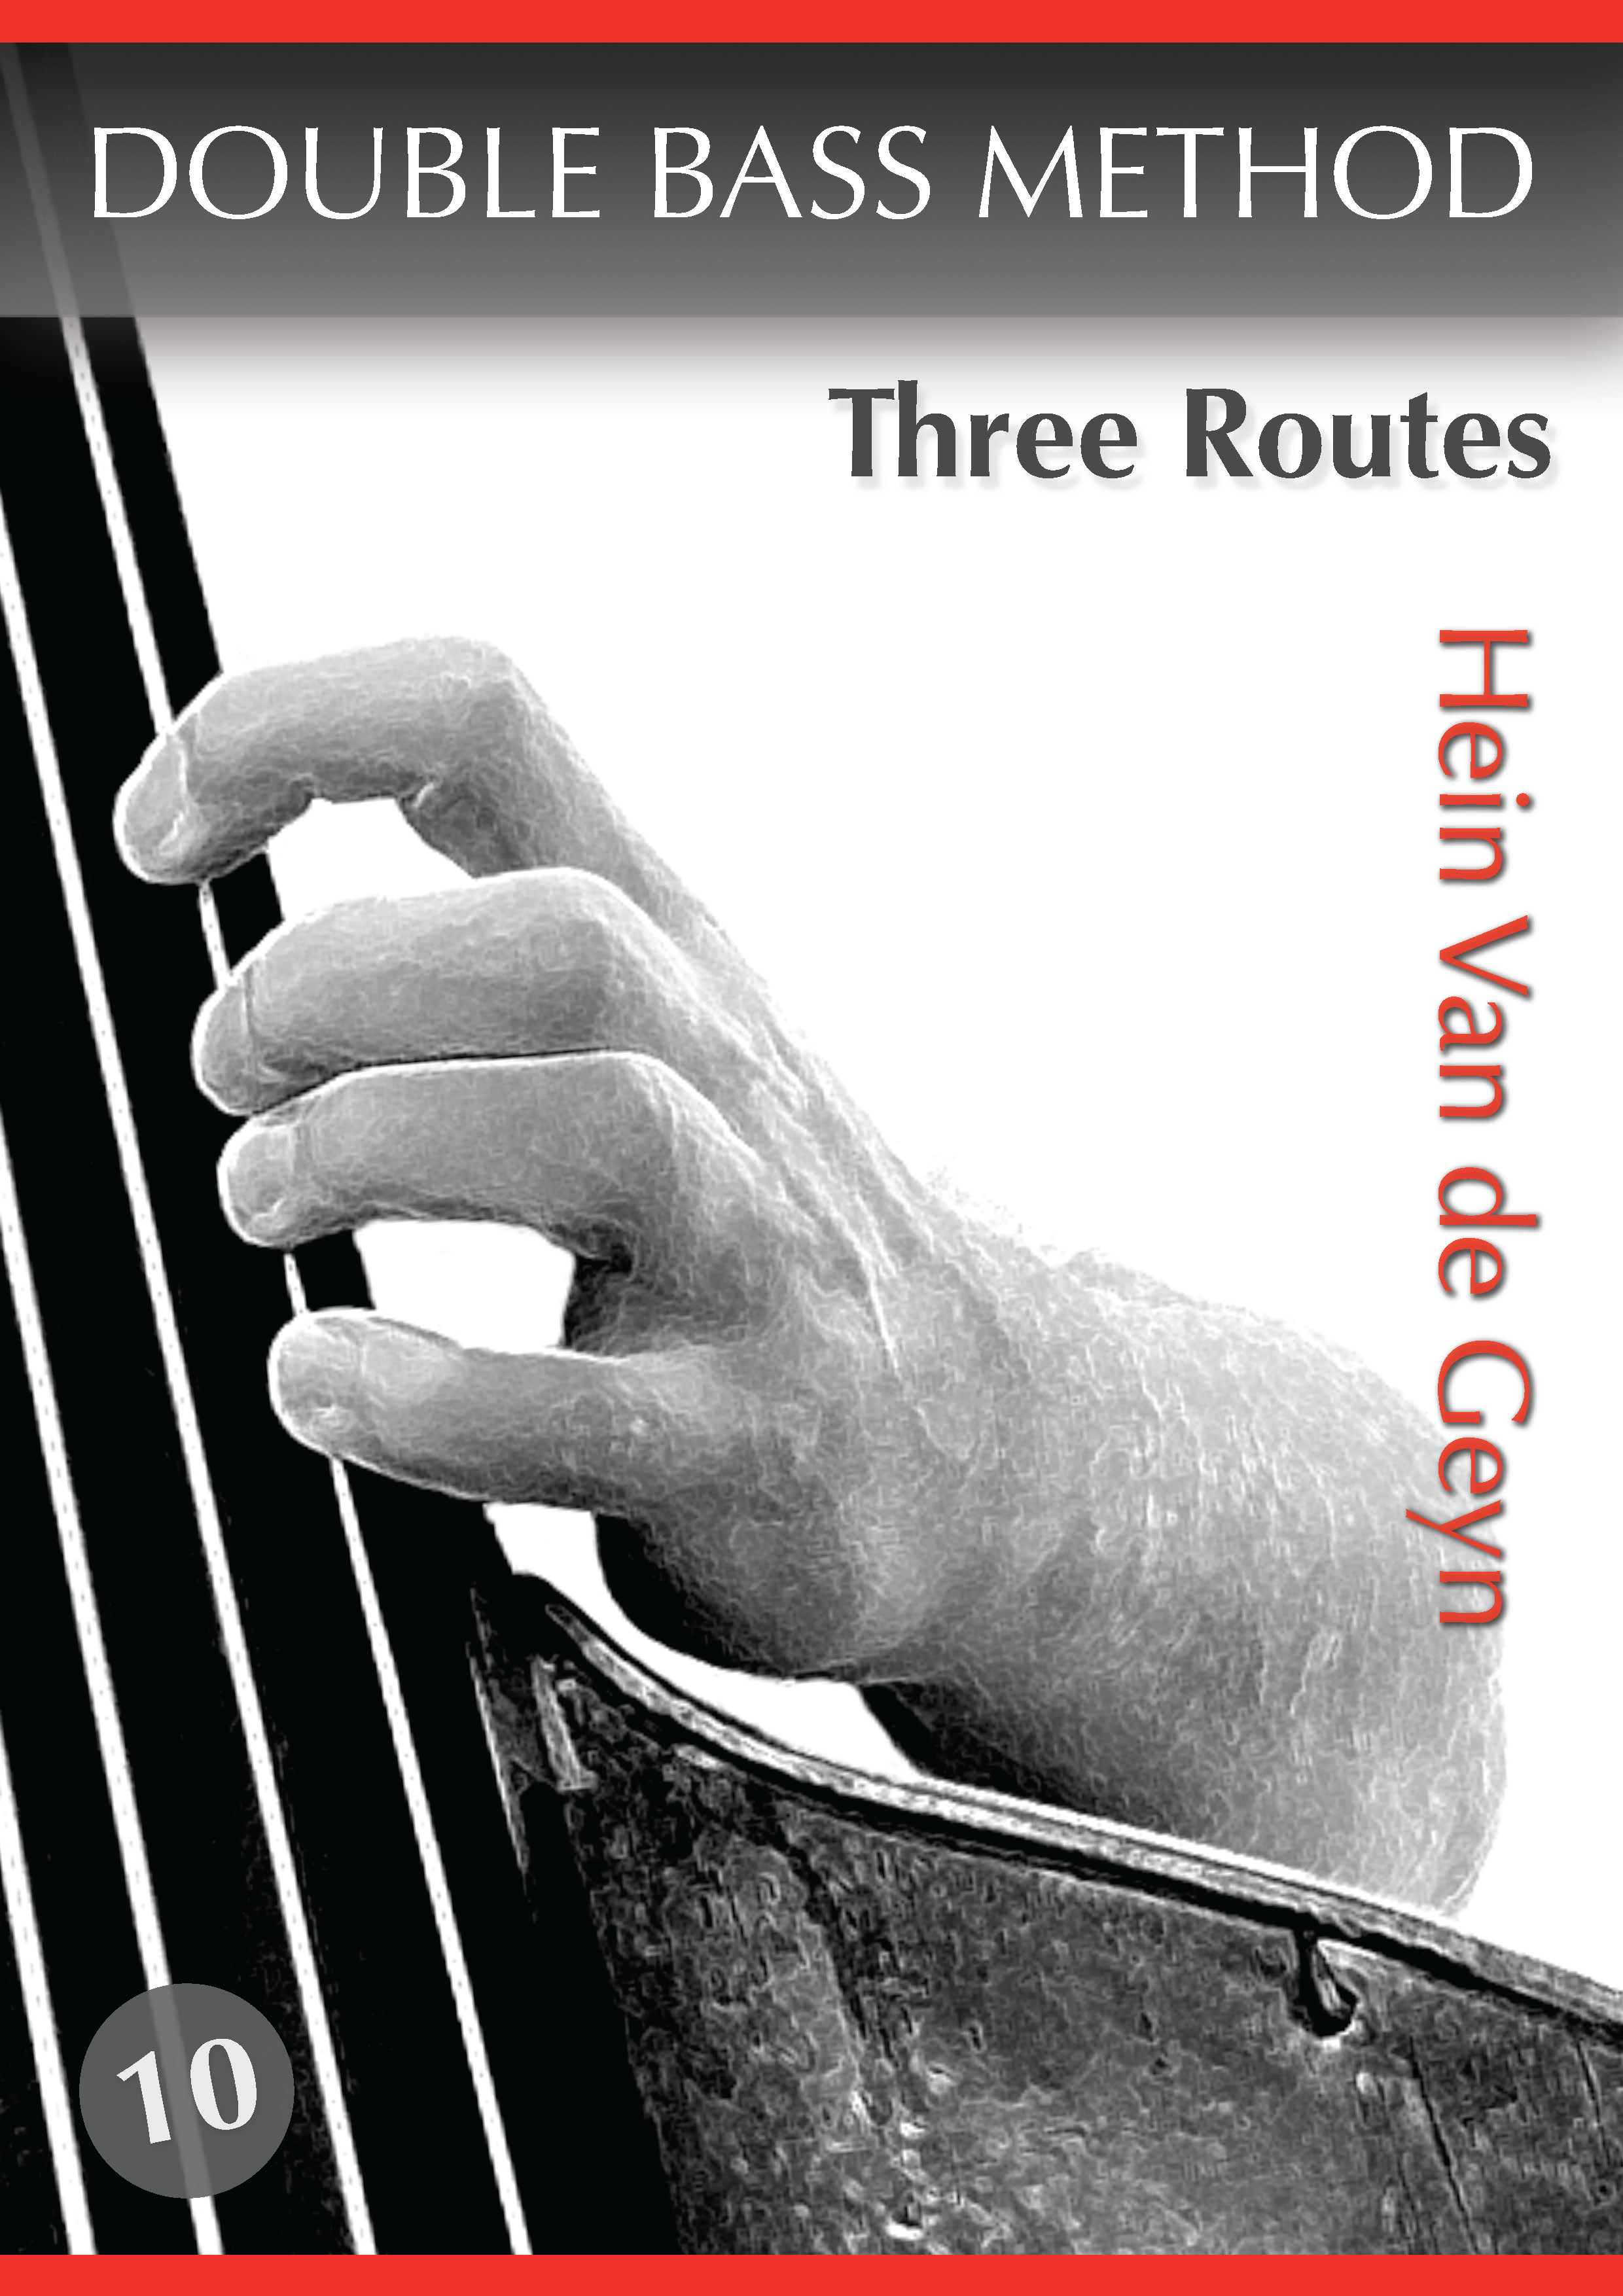 Three Routes - Hein Van de Geyn - Double bass method